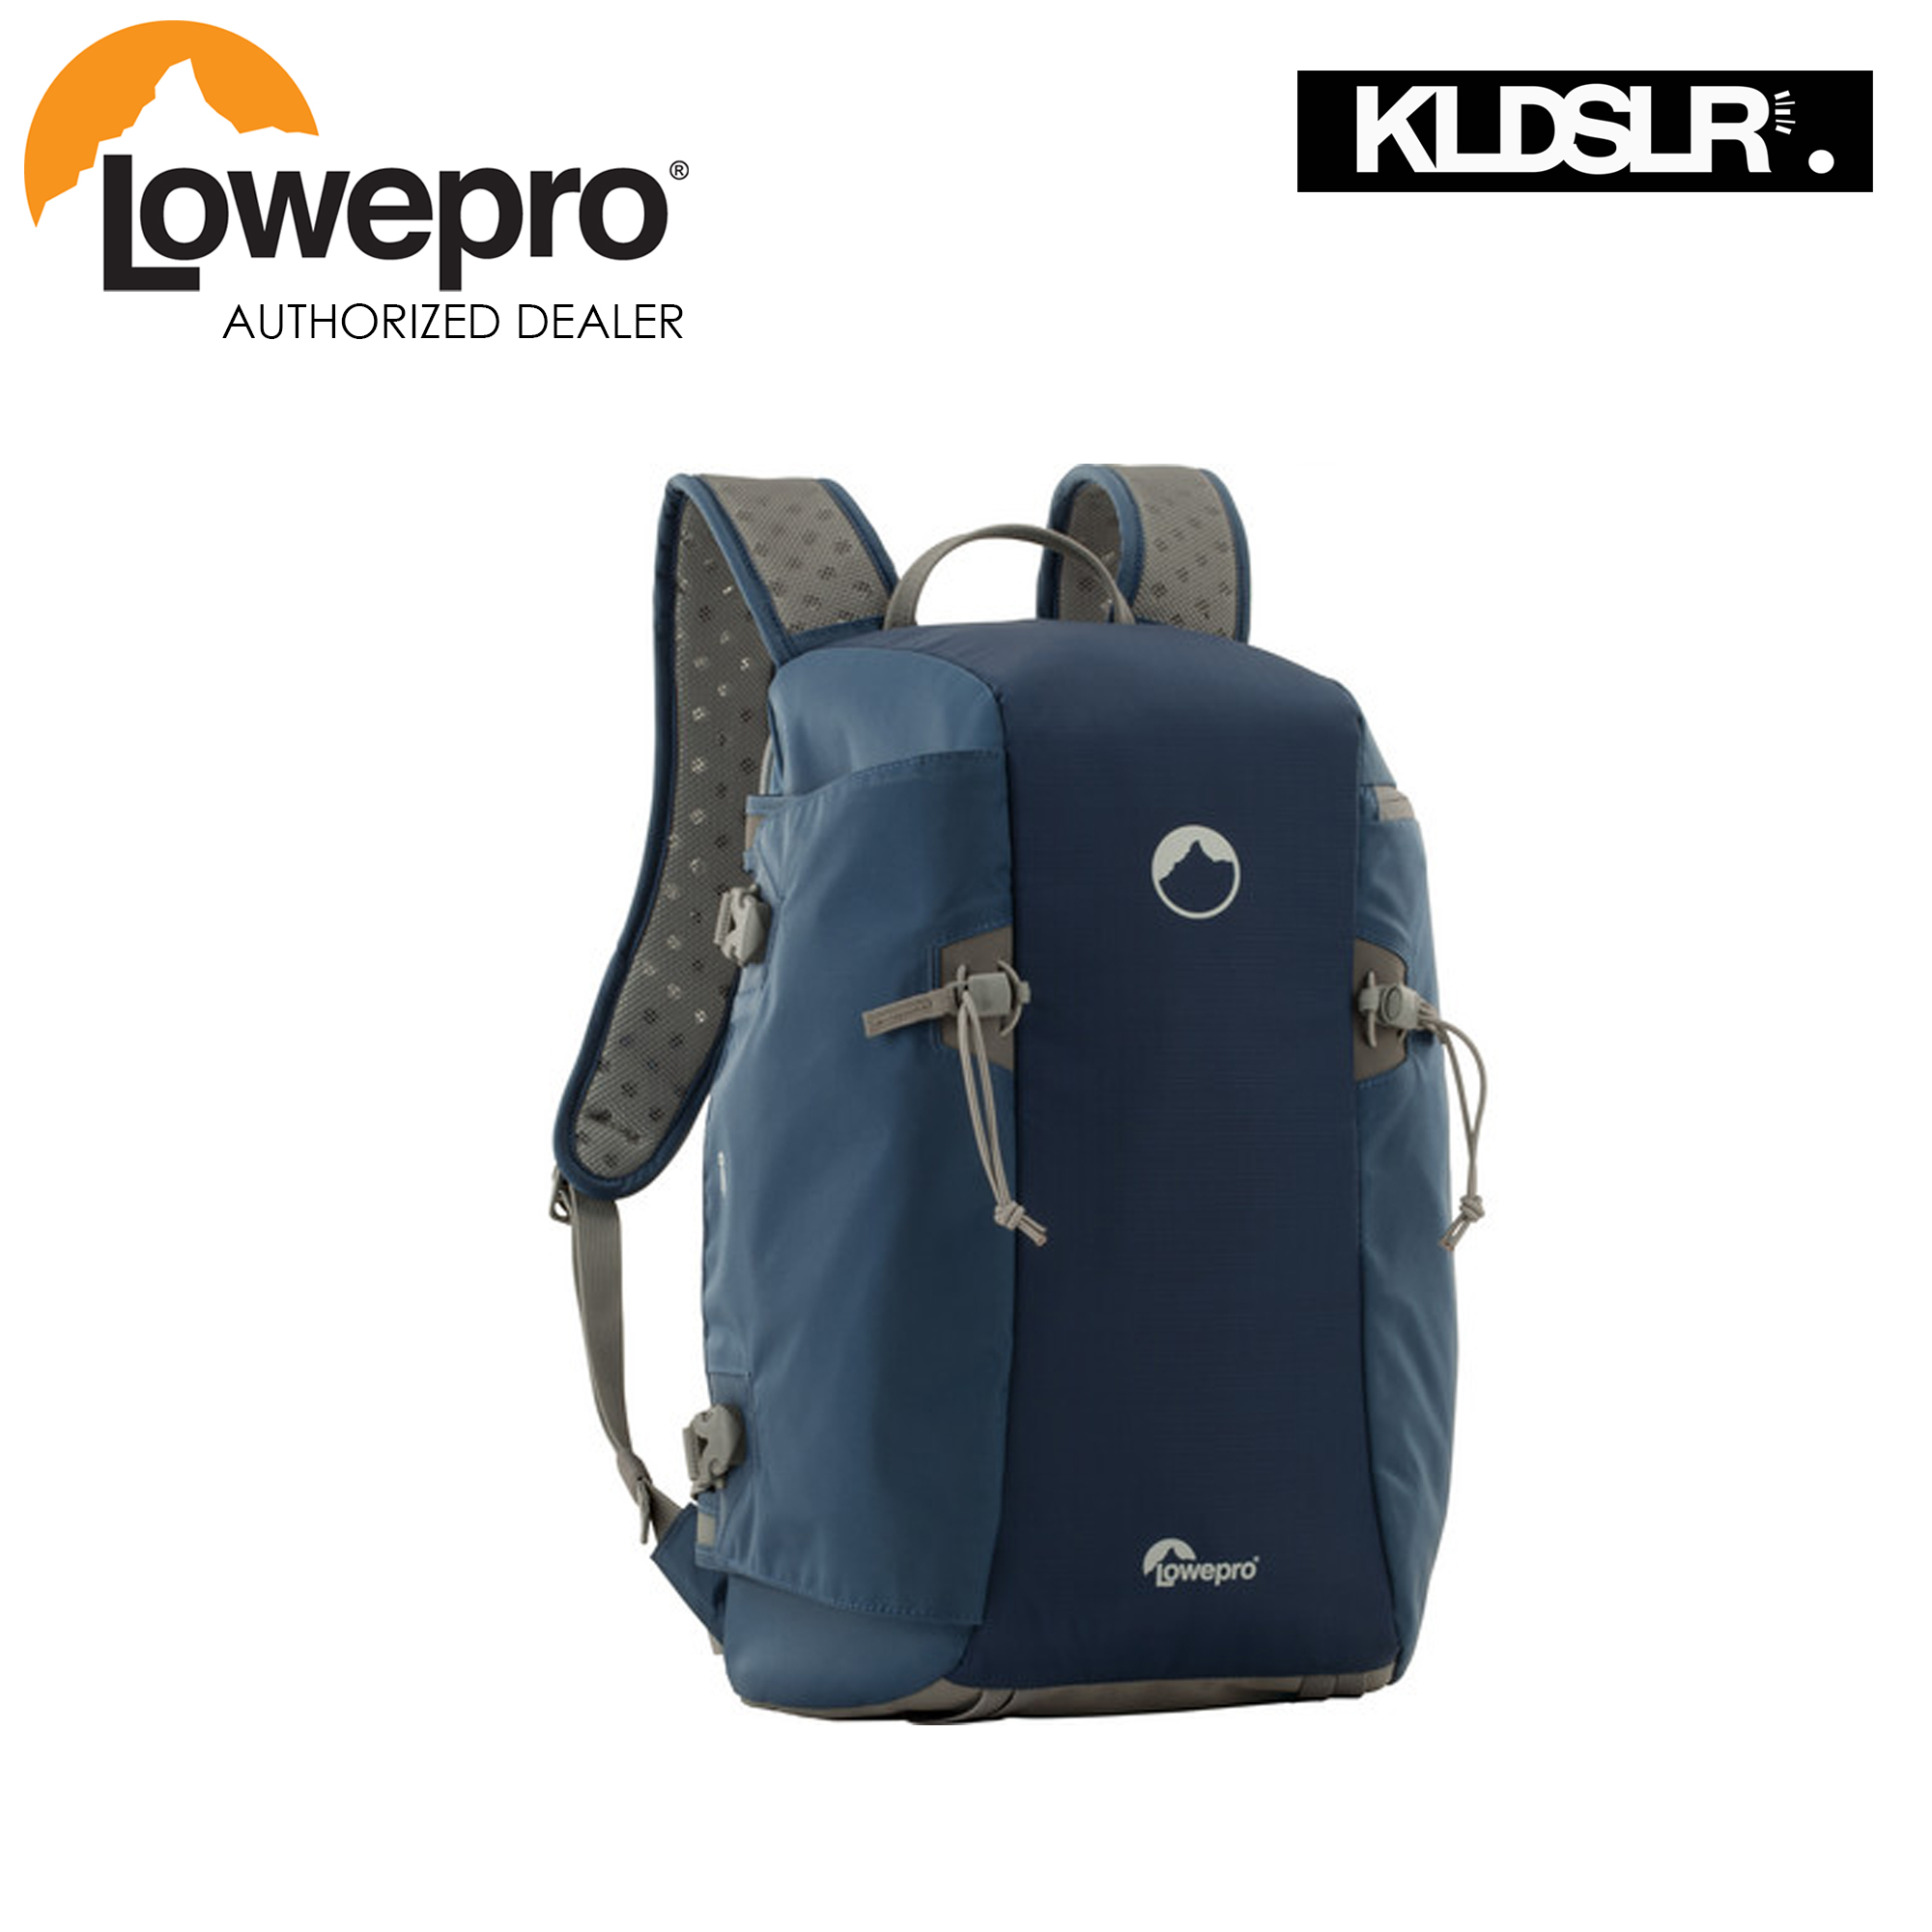 Lowepro Flipside Sport 15L AW Daypack (Blue/Light Gray)